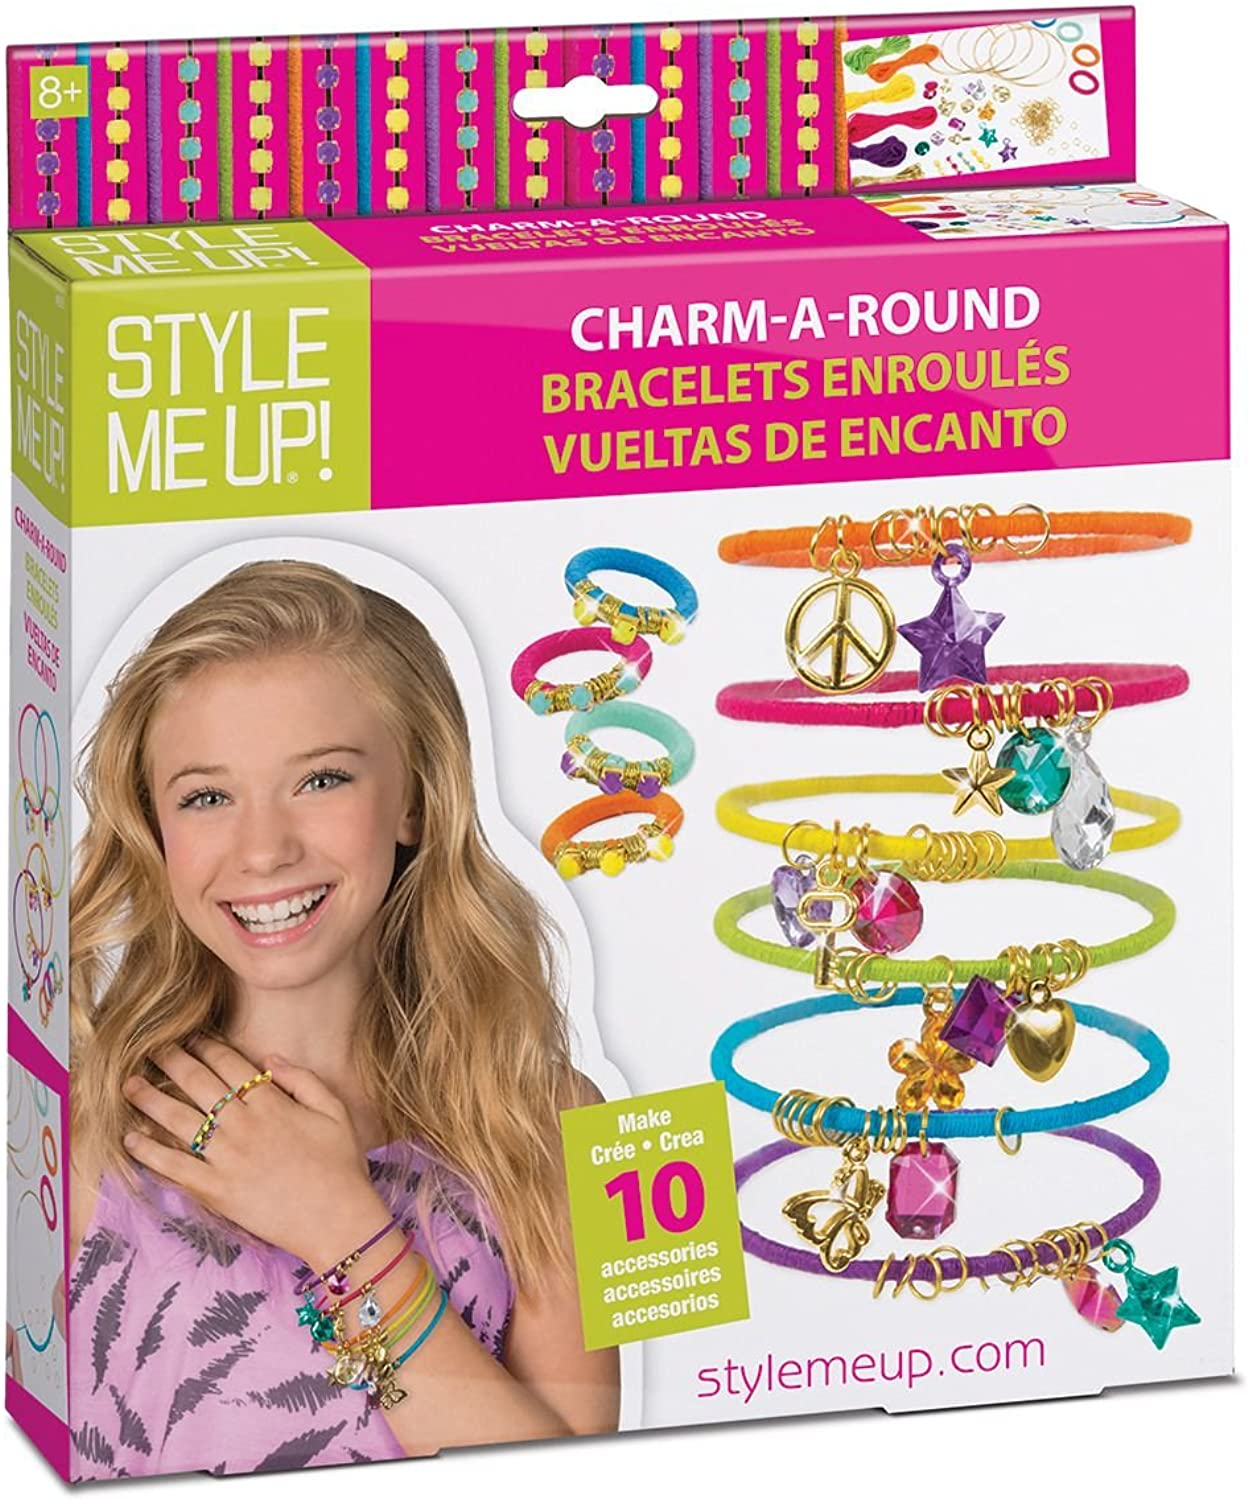 Style me up smu-605 charm-a-round Craft Kit B06XVHWGGN B06XVHWGGN B06XVHWGGN | Wirtschaft